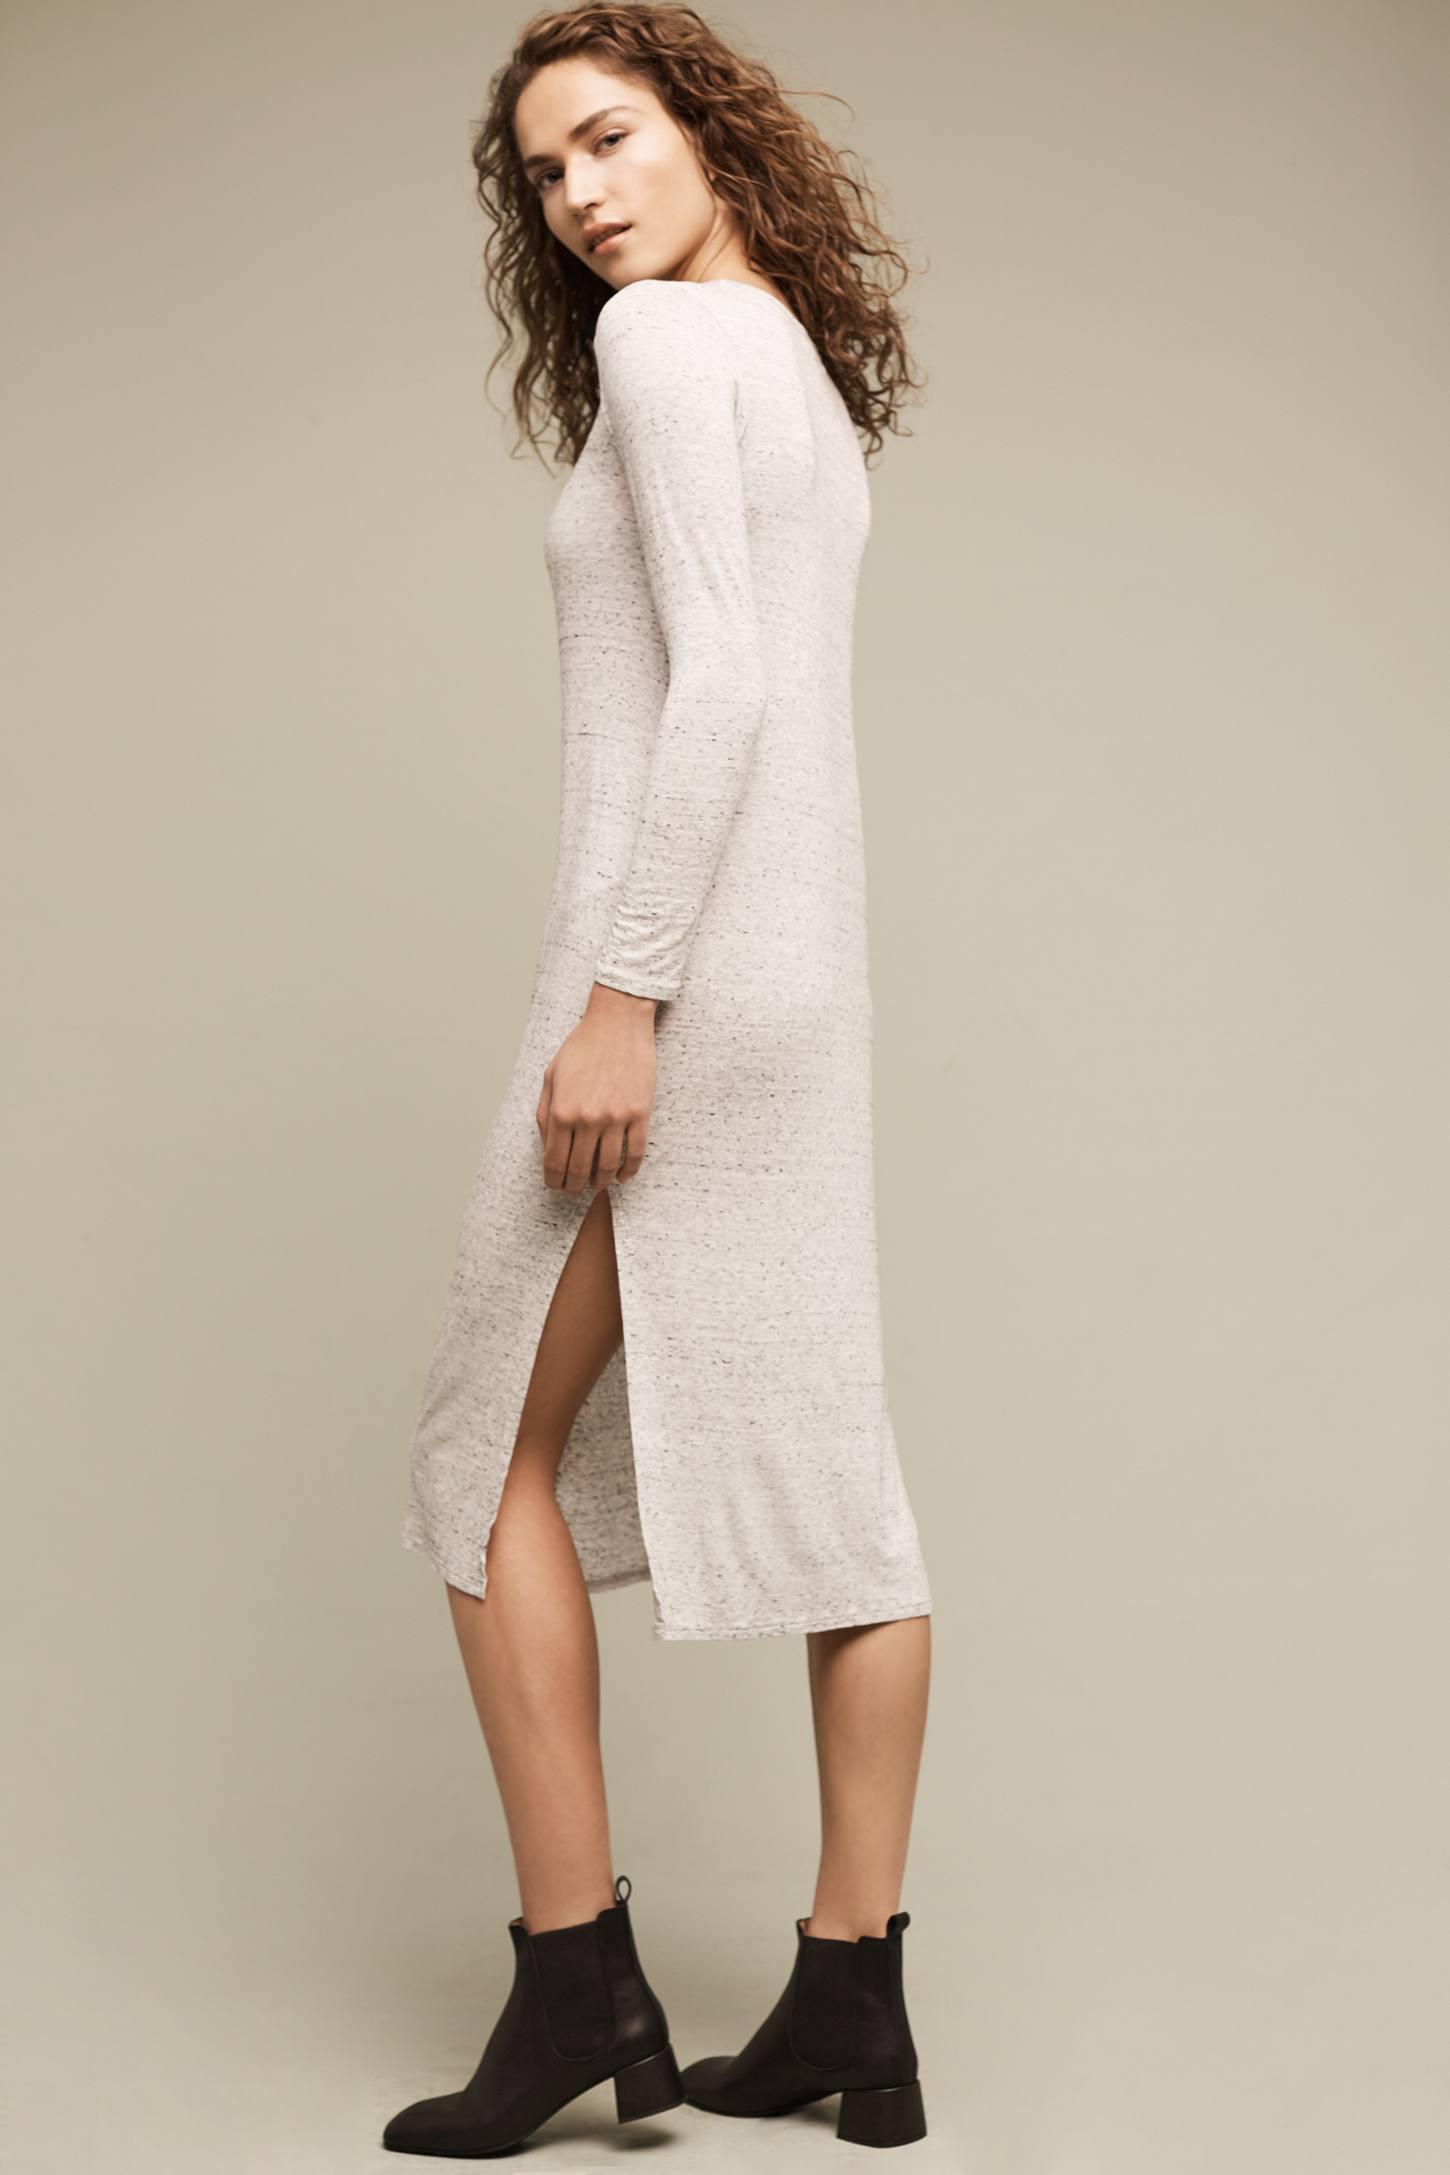 Slide View: 3: Marled T-Shirt Dress